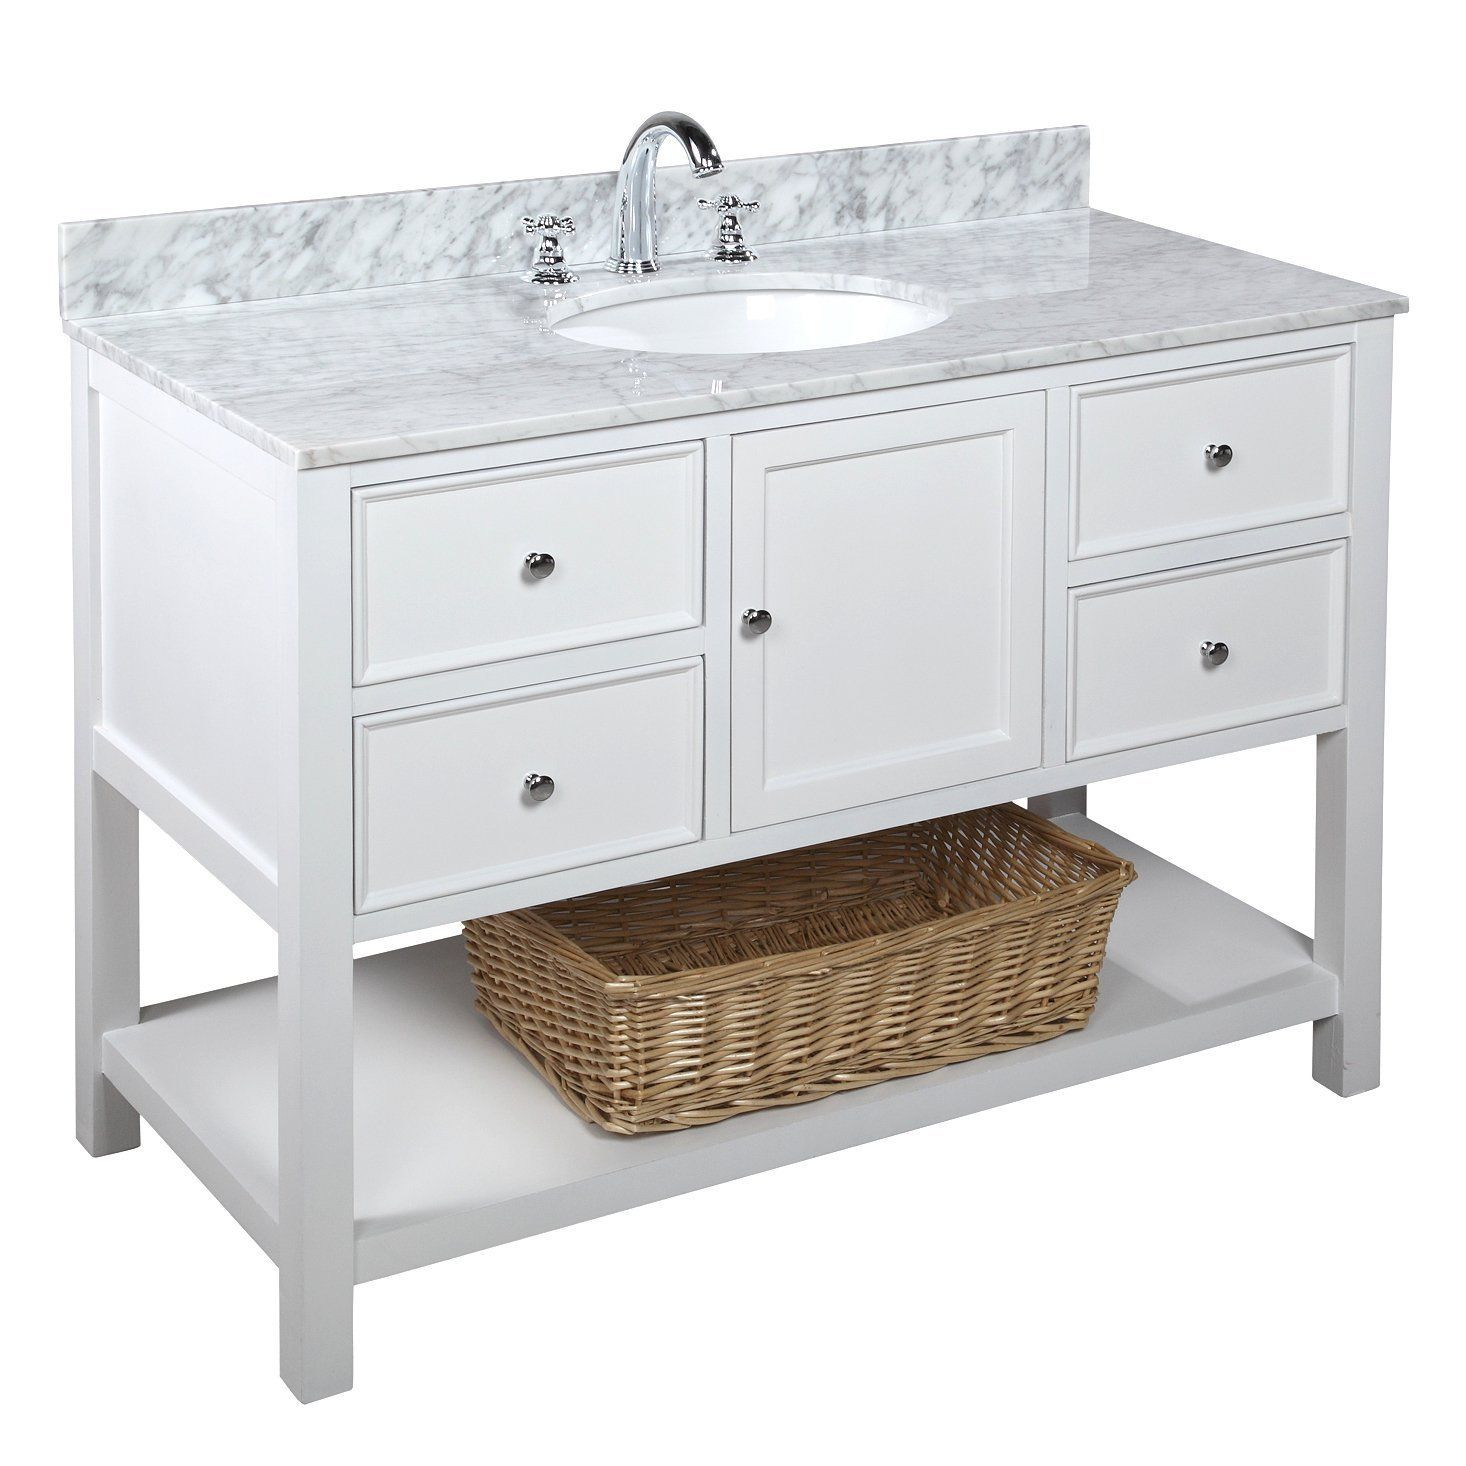 kitchen bath collection kbcd8wtcarr new yorker bathroom vanity with rh pinterest com